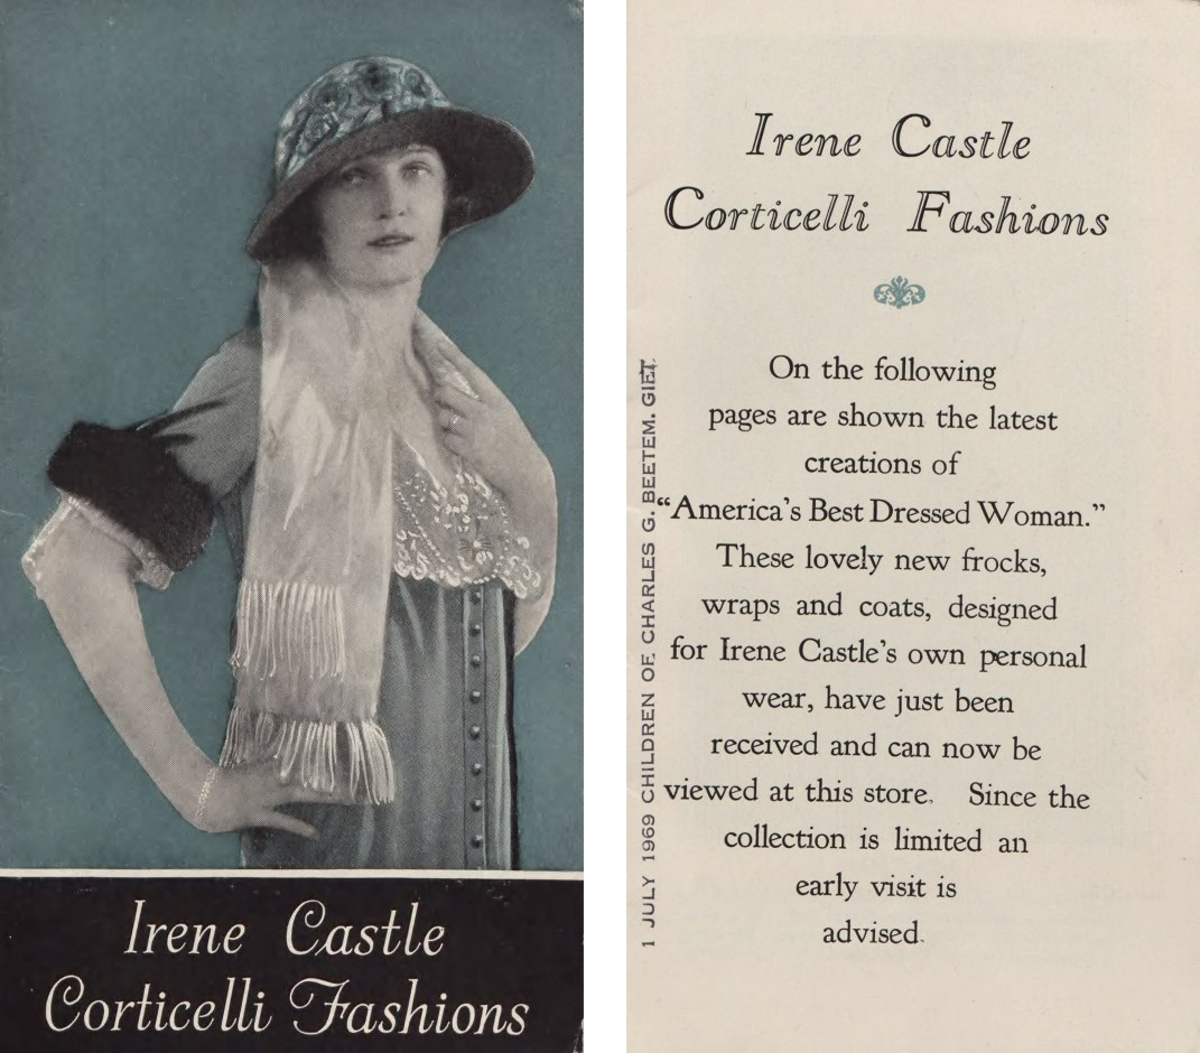 Pamphlet advertising Irene Castle Corticelli Fashions, 1925. Images: Courtesy of Hagley Museum and Library